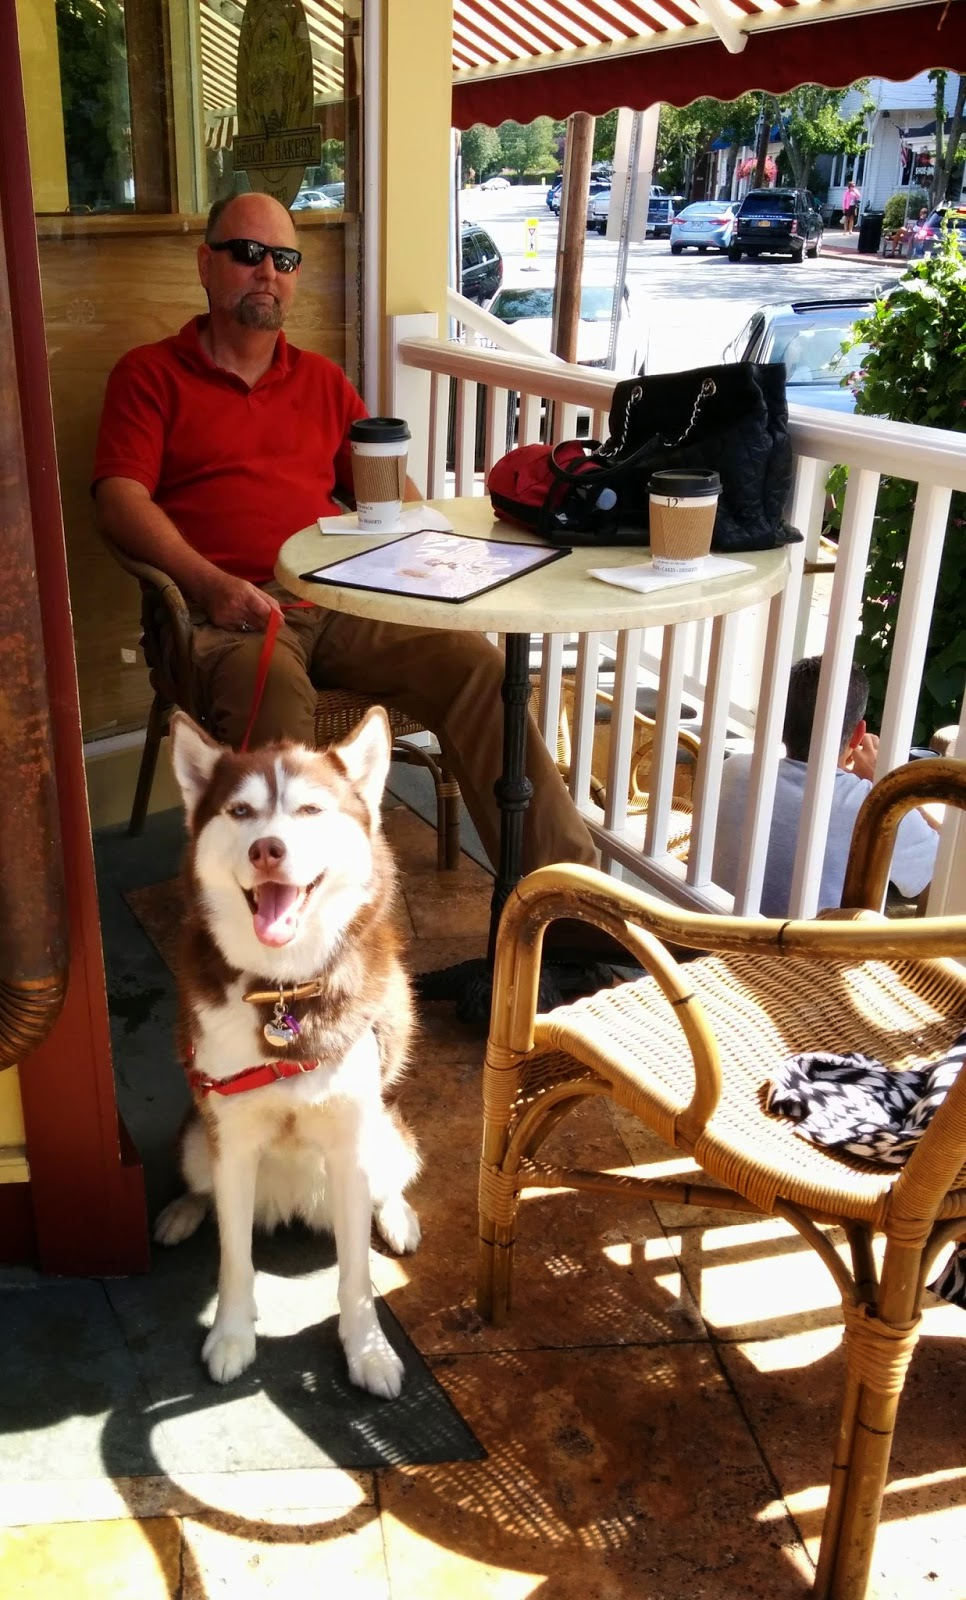 Dog friendly Beach Bakery Grand Cafe in West Hampton is a great place for breakfast or lunch with your pooch